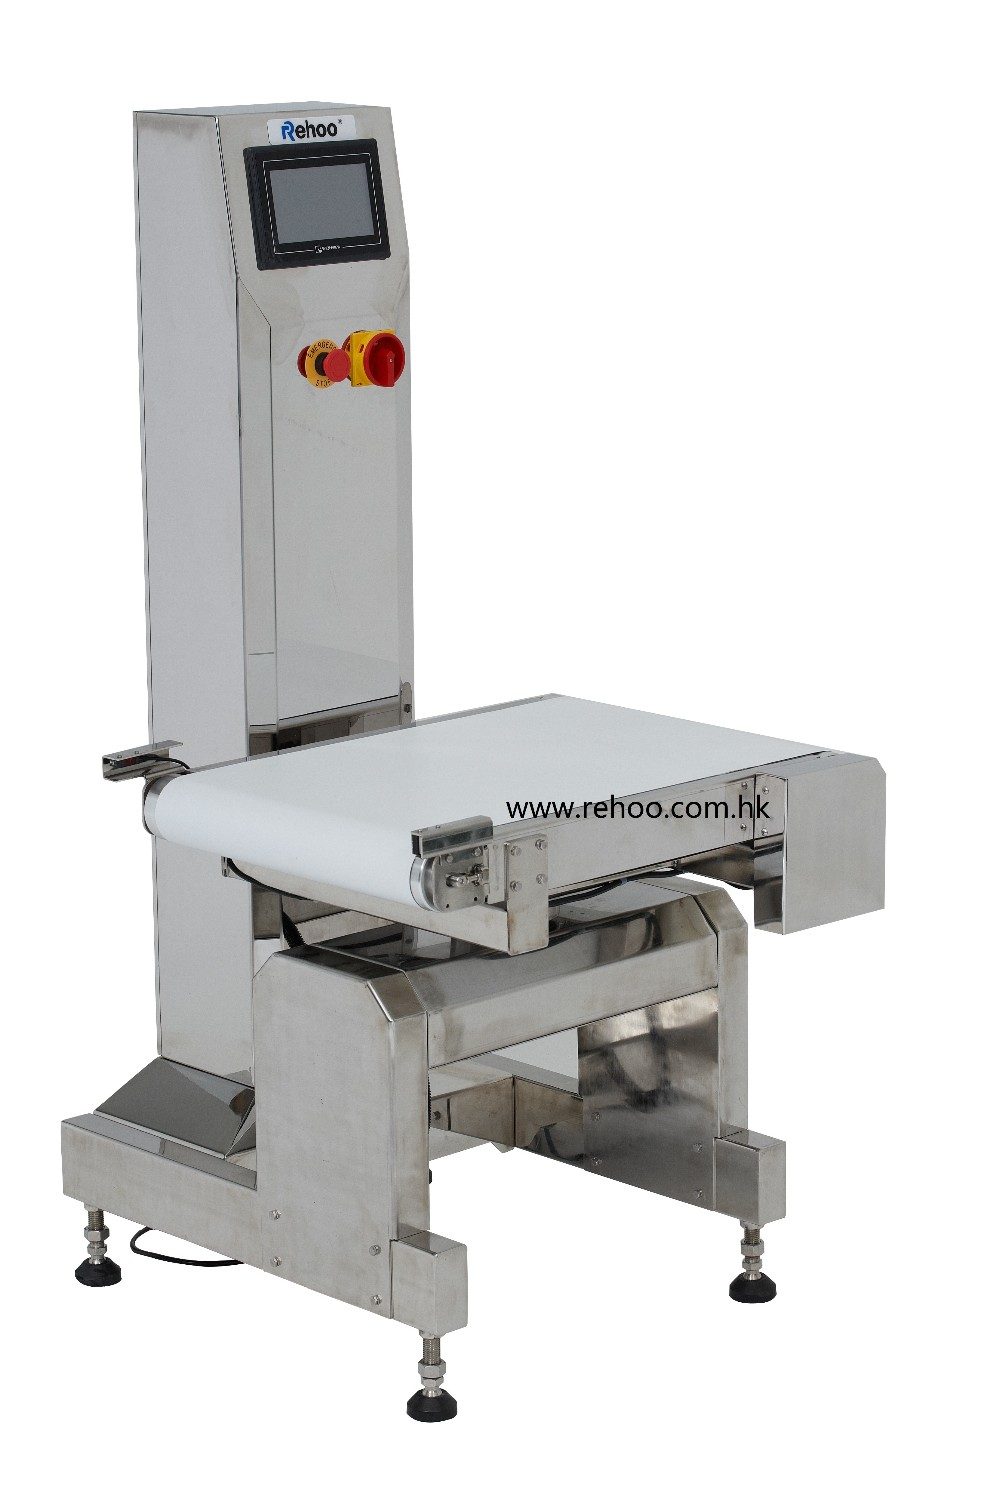 CWC-M450 Rehoo conveyor weighing scale check weighter online weight check machine